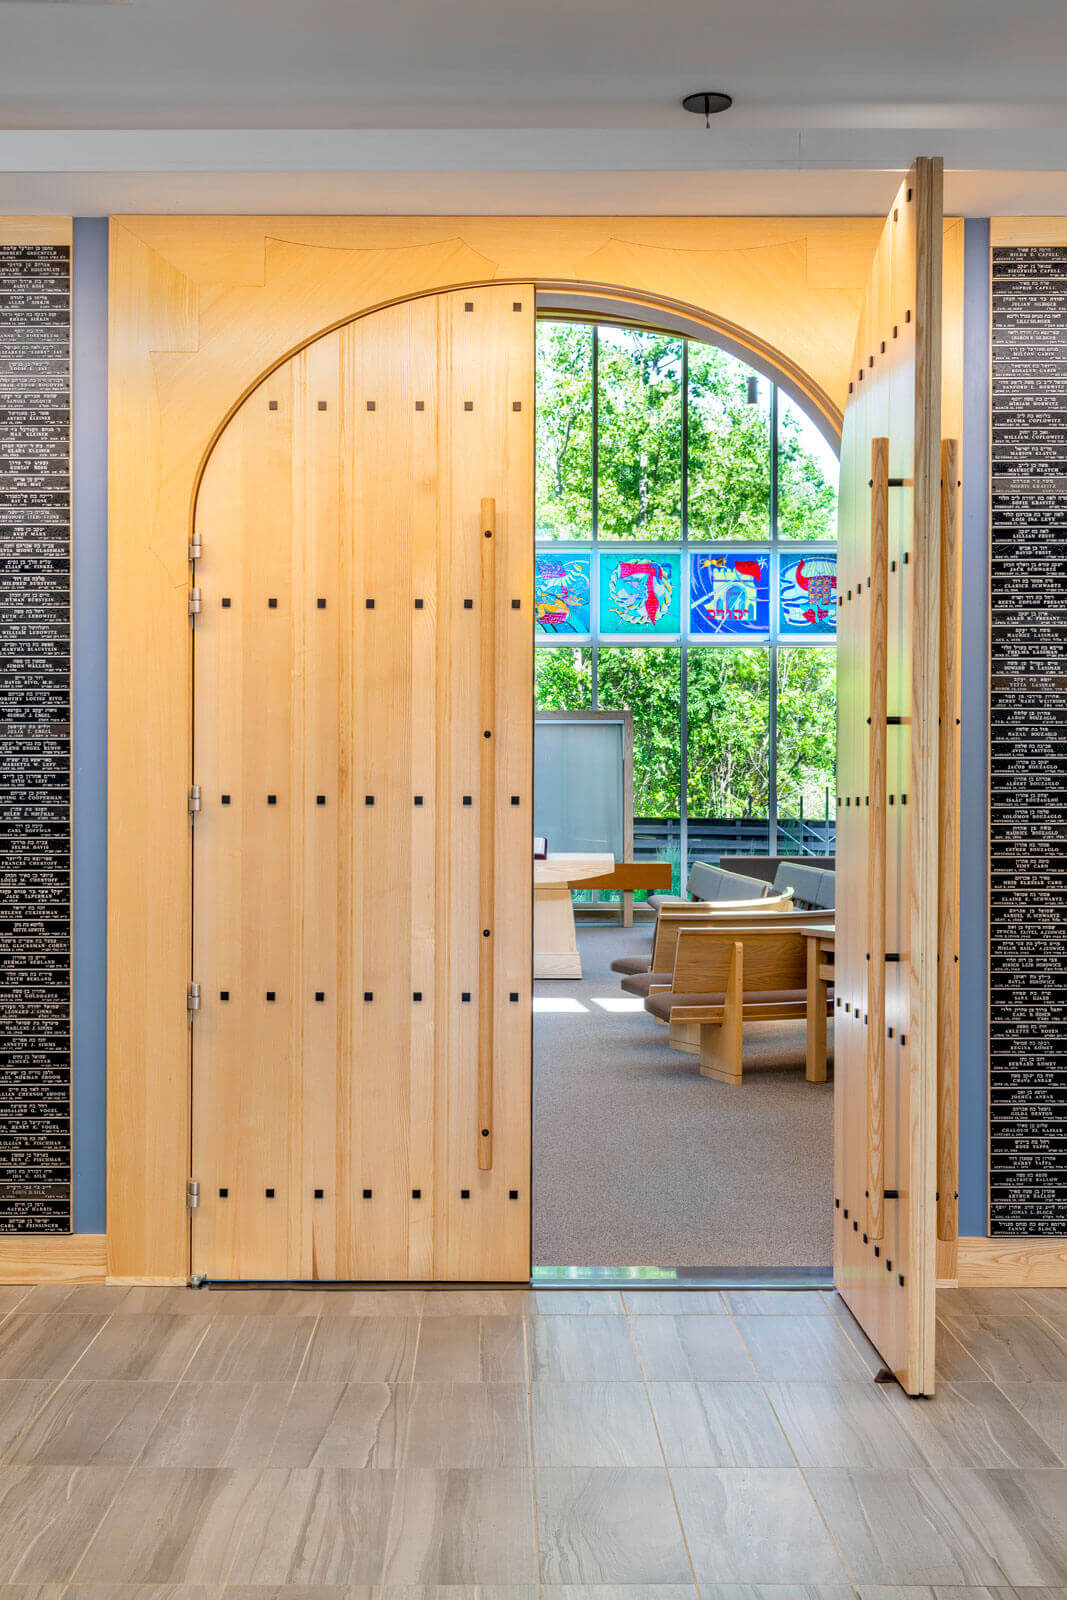 Wooden arched door opening to the sanctuary inside, revealing a bright, sunlit space with views to the woodlands surrounding the Temple.